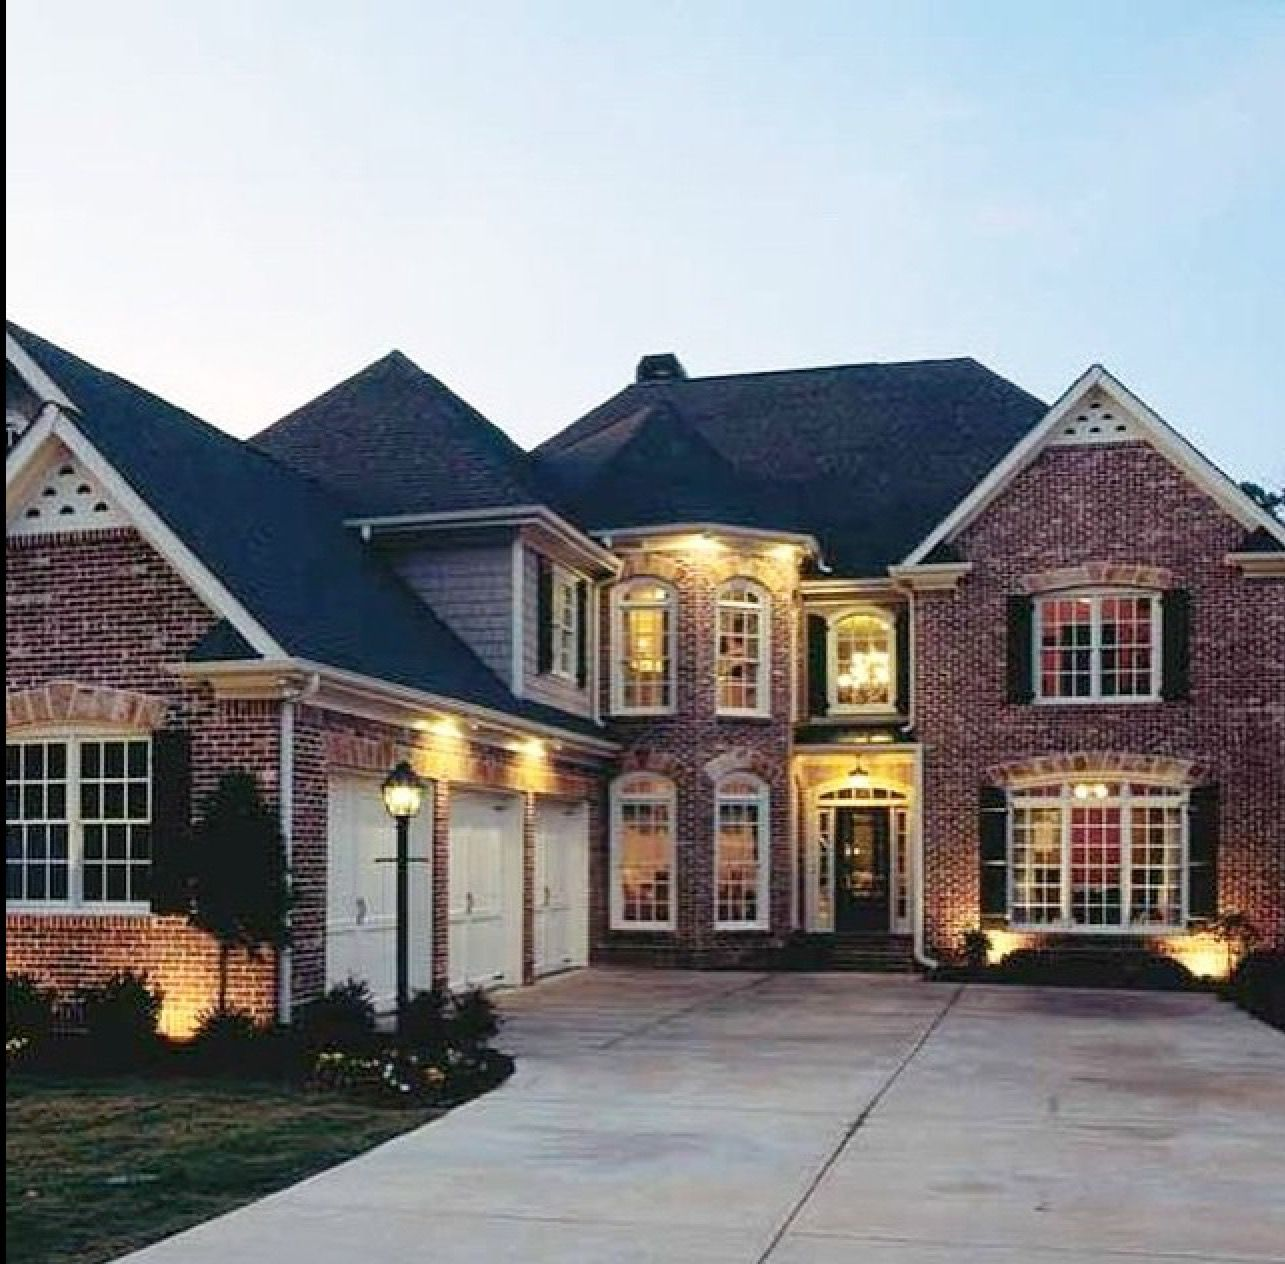 ➳ pinterest : @zzhanee | HOUSE GOALS✨ | French country ... on 1200 sq ft 2 story house plans, forever house plans, mudroom house plans, bungalow house plans, polyvore house plans, tutorial house plans, thanksgiving house plans, friends house plans, crafts house plans, birchwood homes omaha floor plans, outdoor entertaining house plans, deviantart house plans, french country house plans, craftsman house plans, art house plans, rustic house plans, flickr house plans, ranch house plans, bird nest house plans, love house plans,